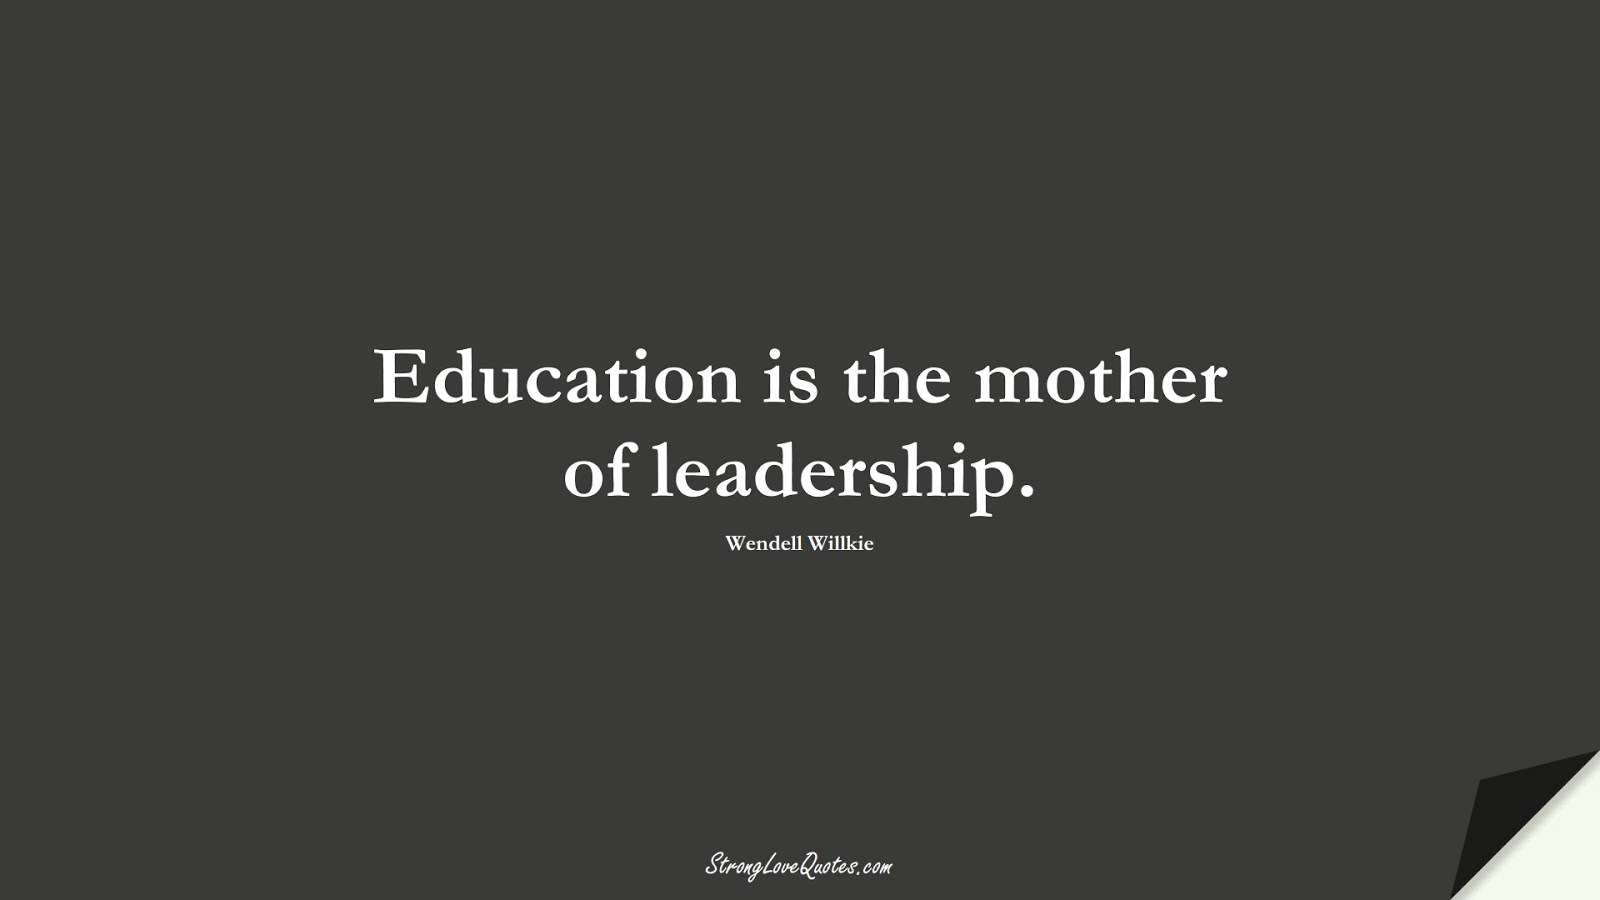 Education is the mother of leadership. (Wendell Willkie);  #EducationQuotes